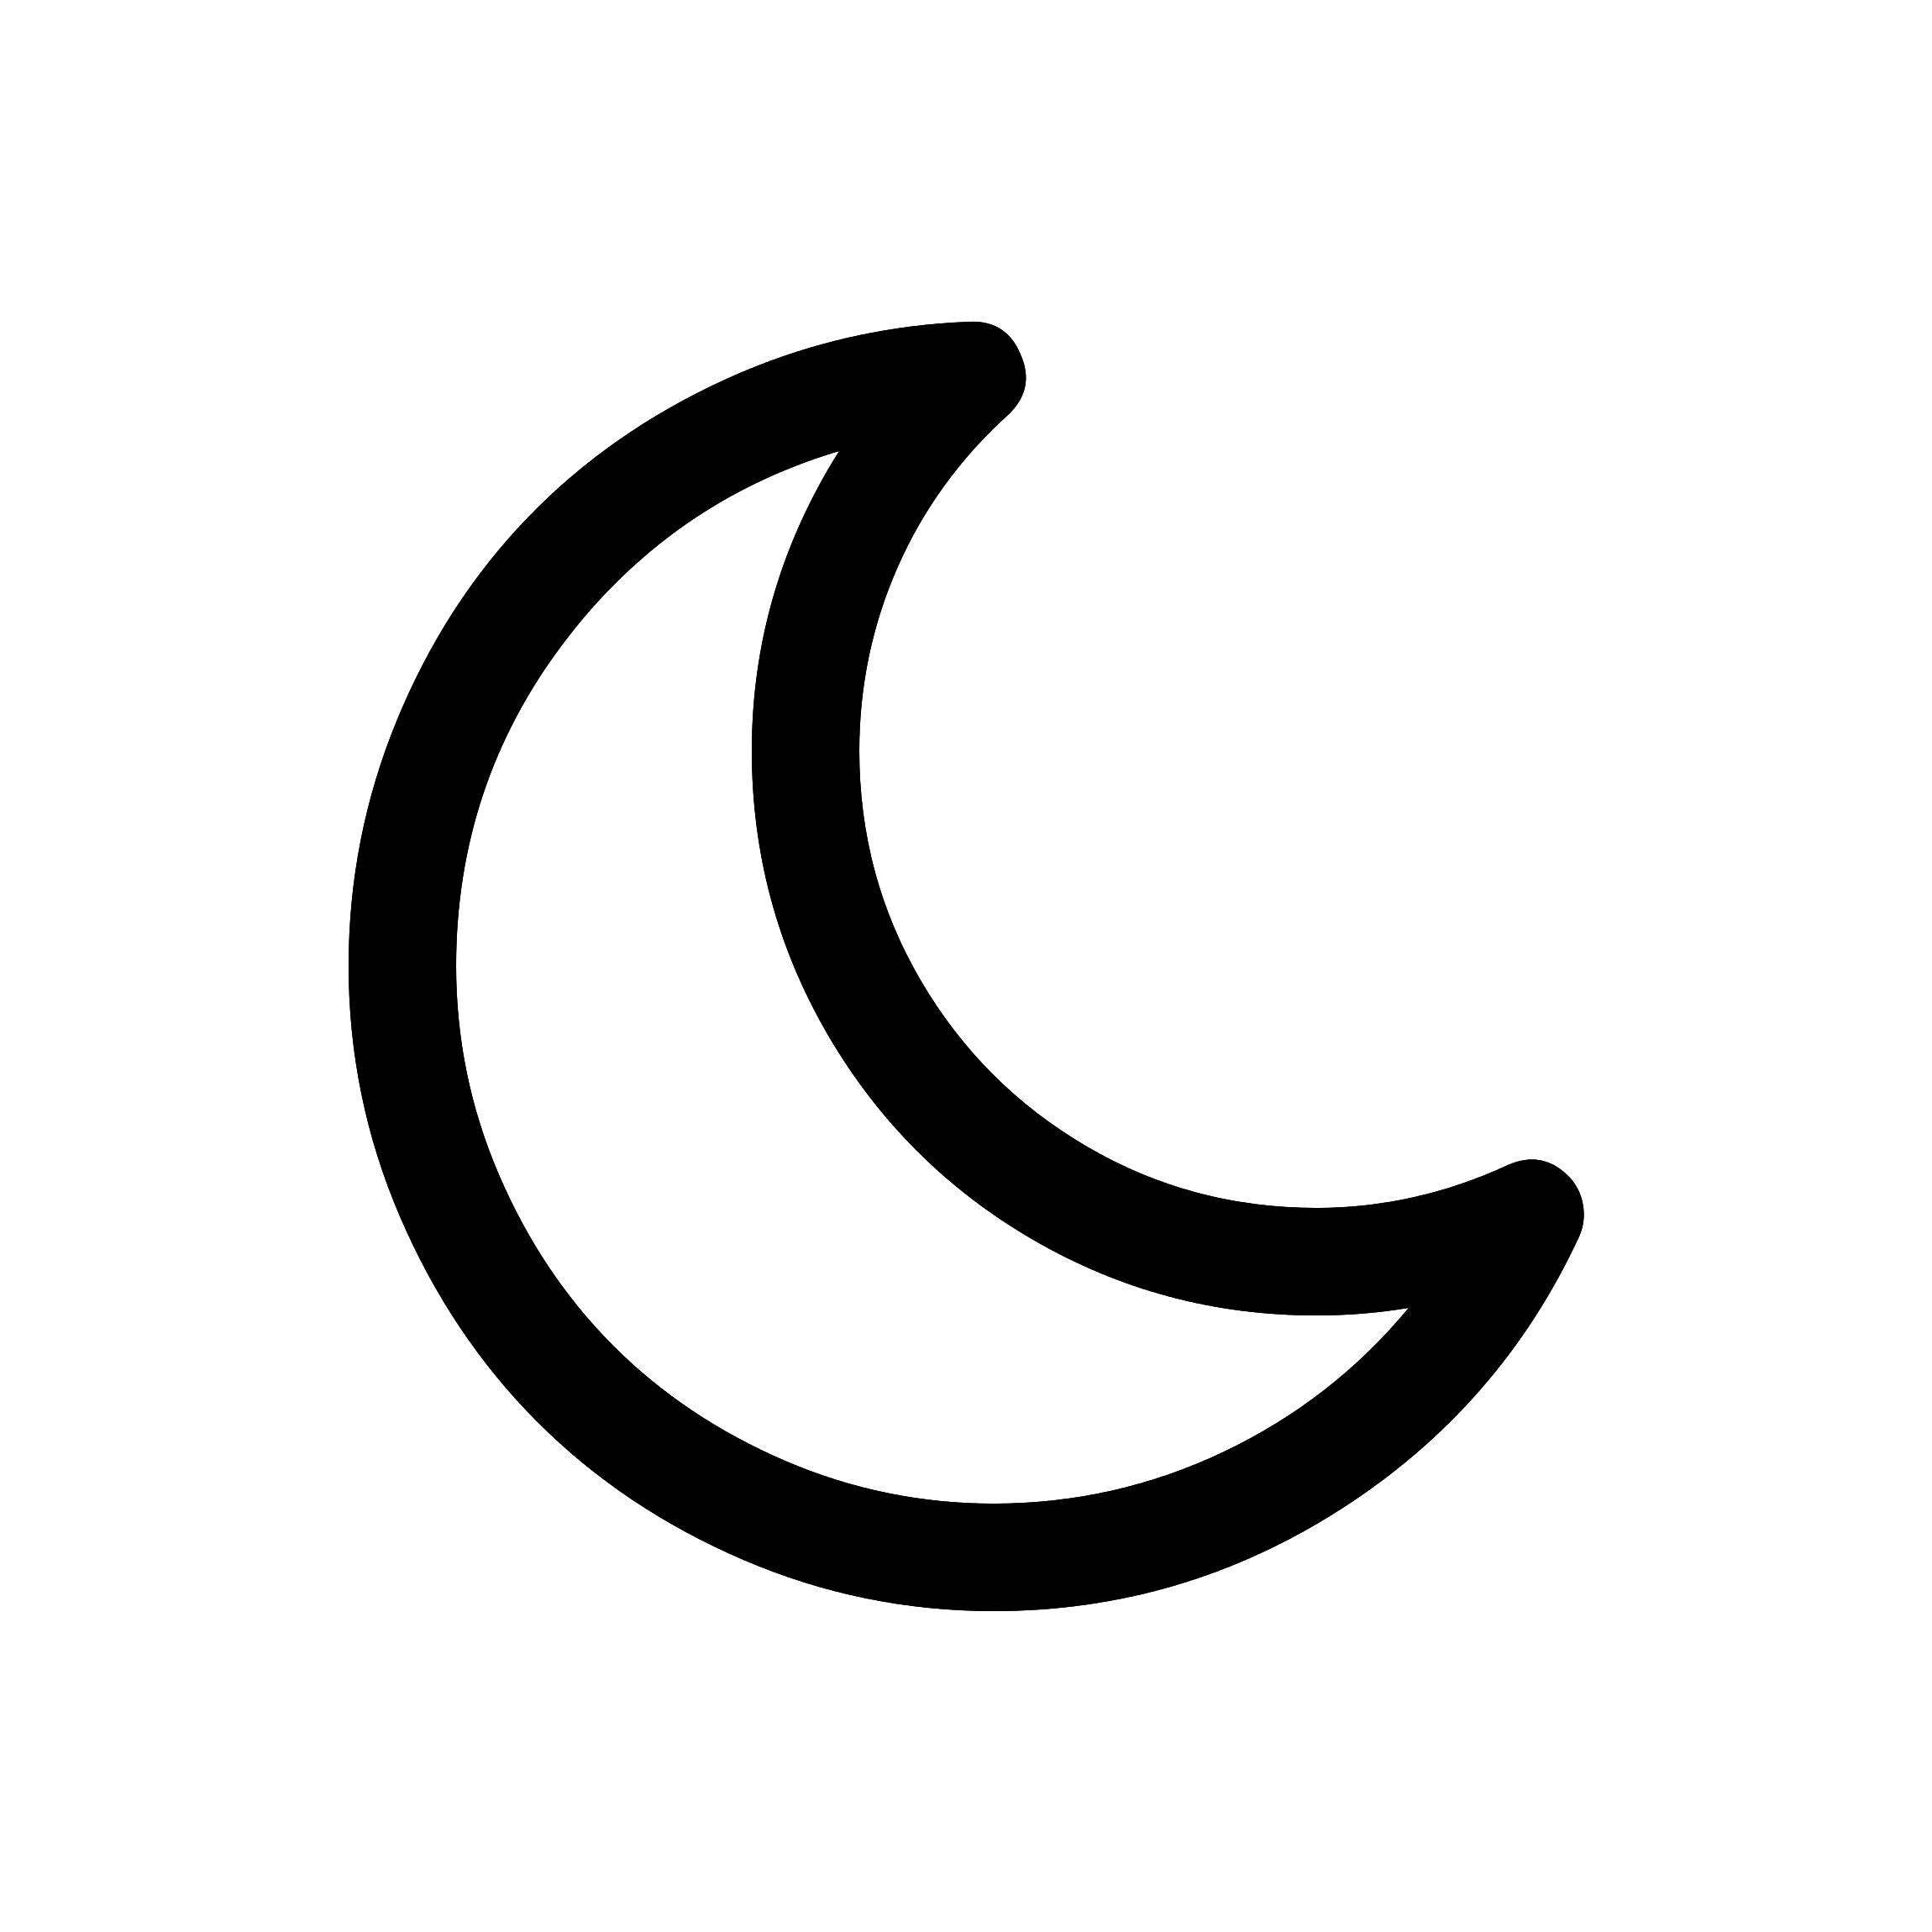 data/images/moon-o.png